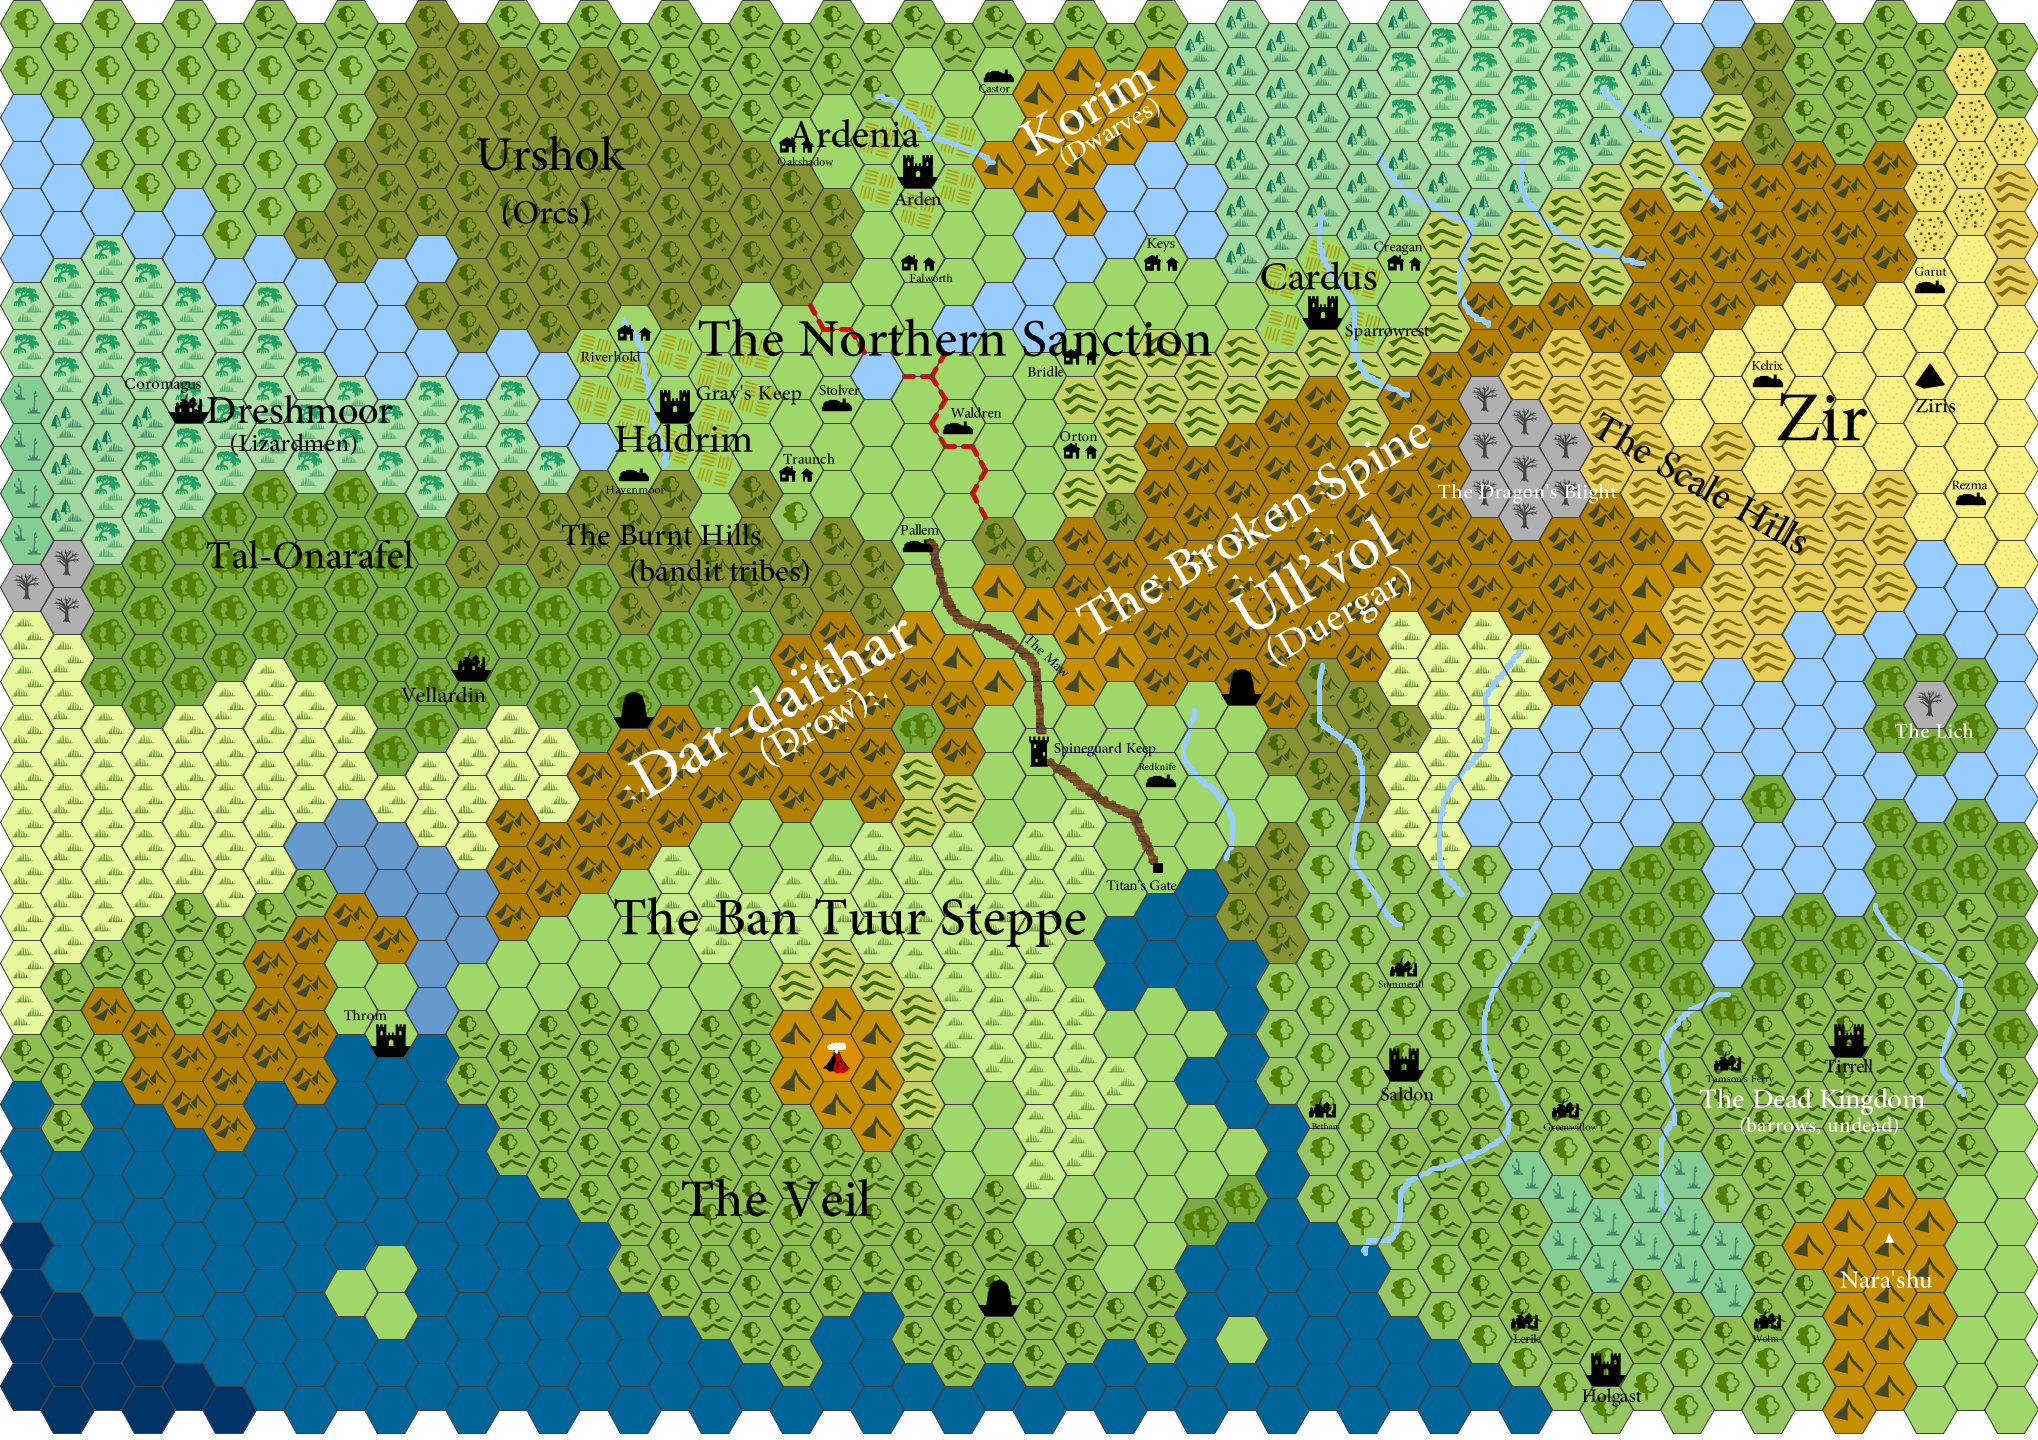 Hexographer World Map.Let S Build A World Together Youtube